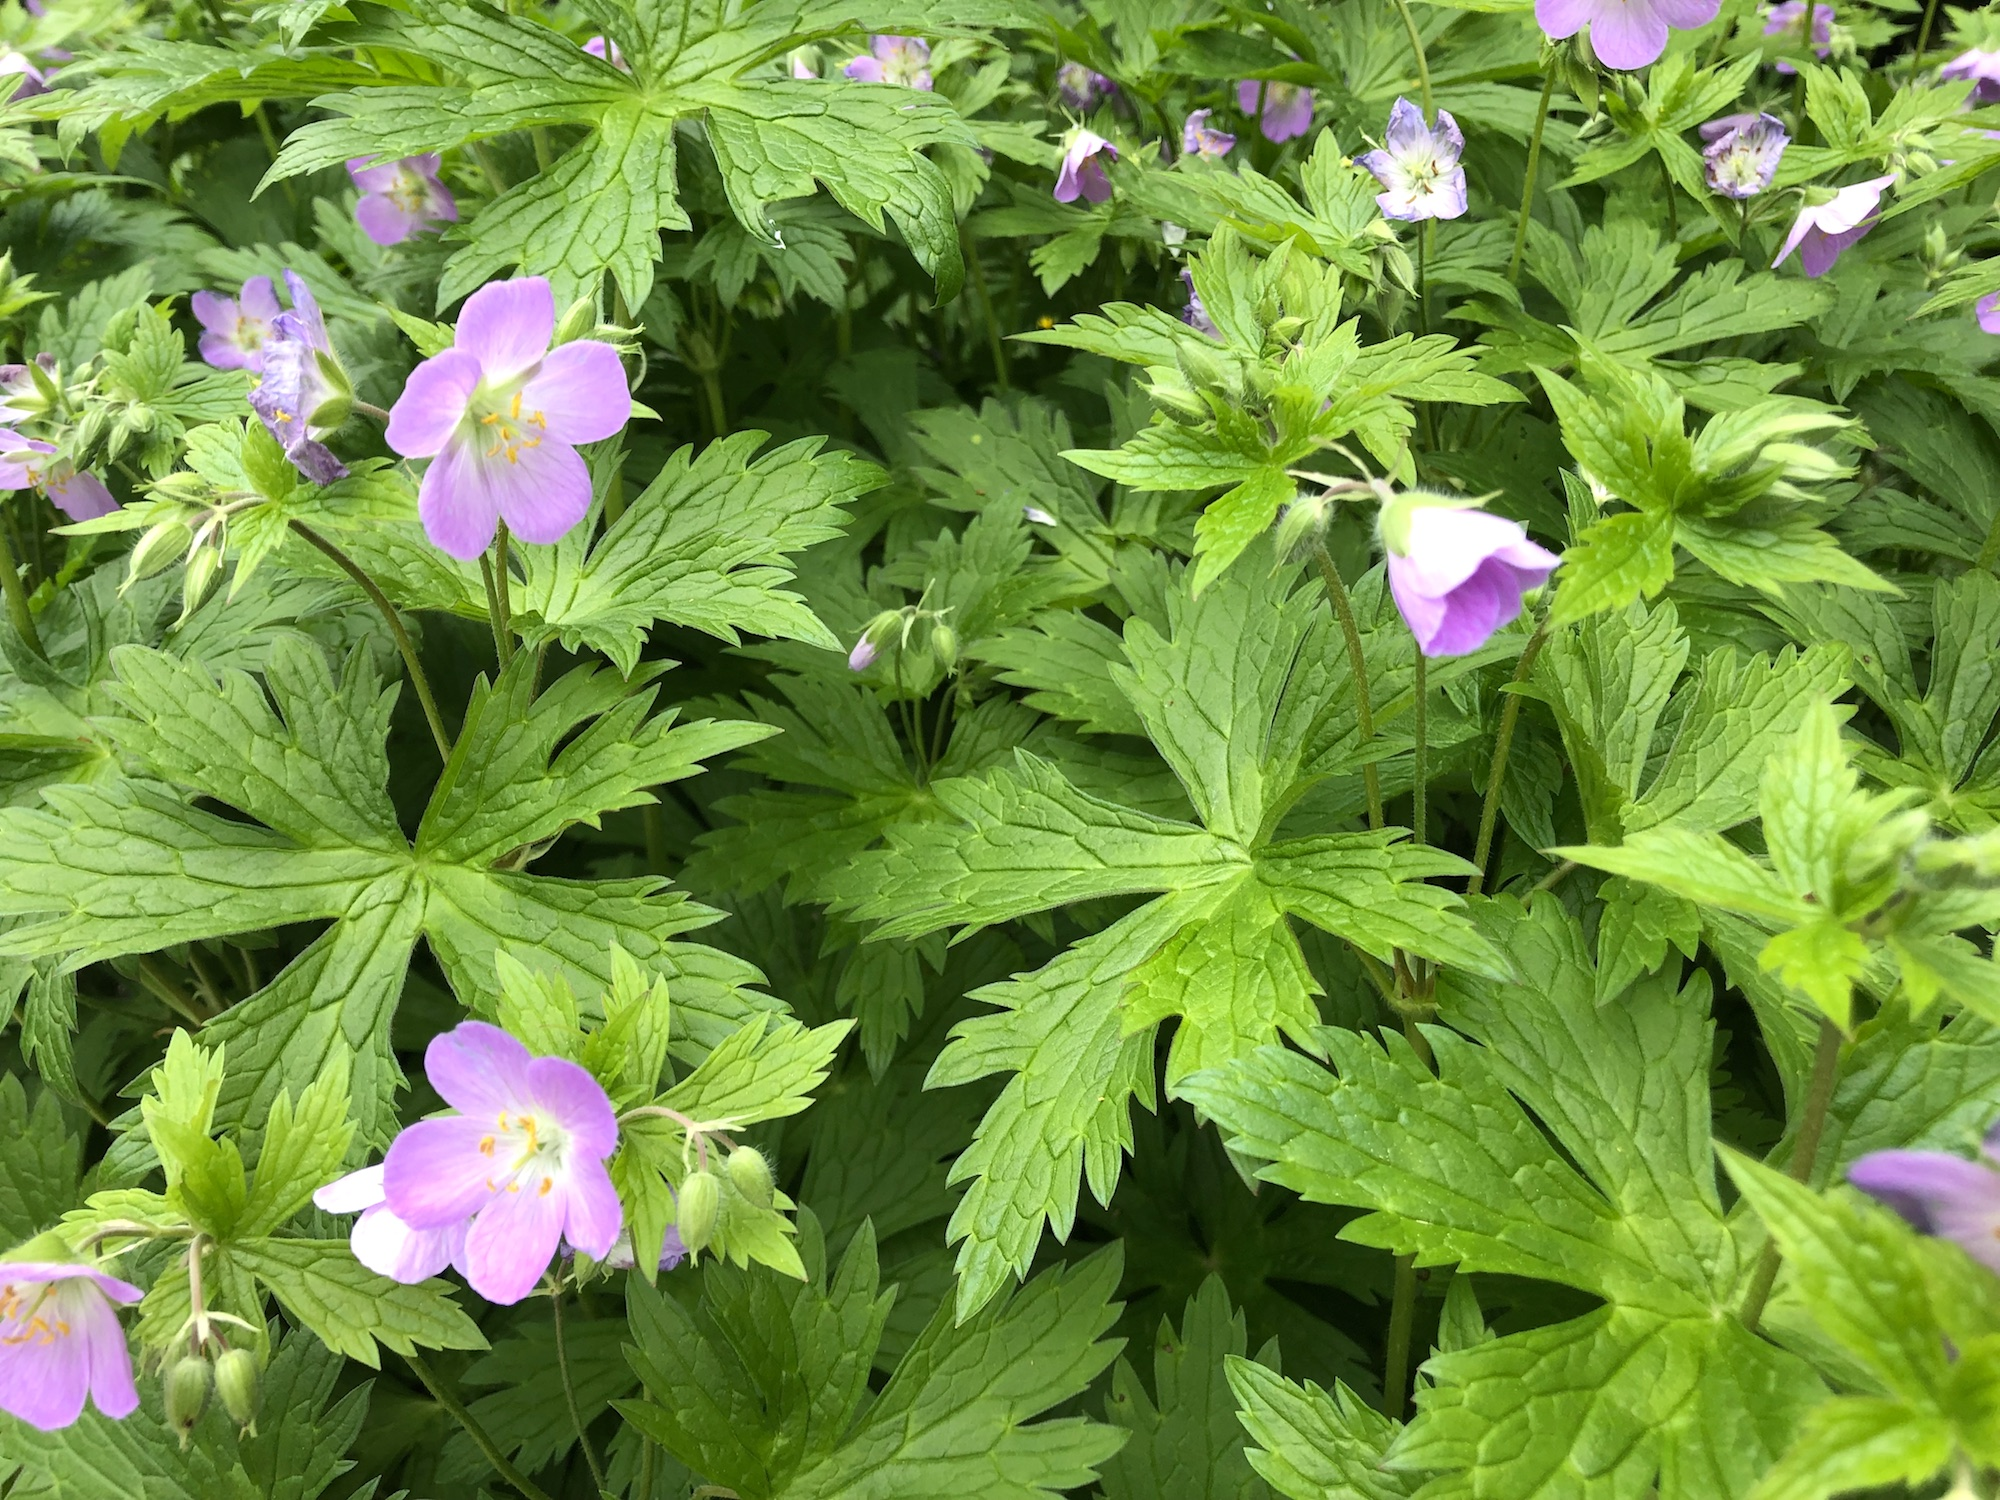 Wild Geranium in the Oak Savanna near Council Ring on May 17, 2019.